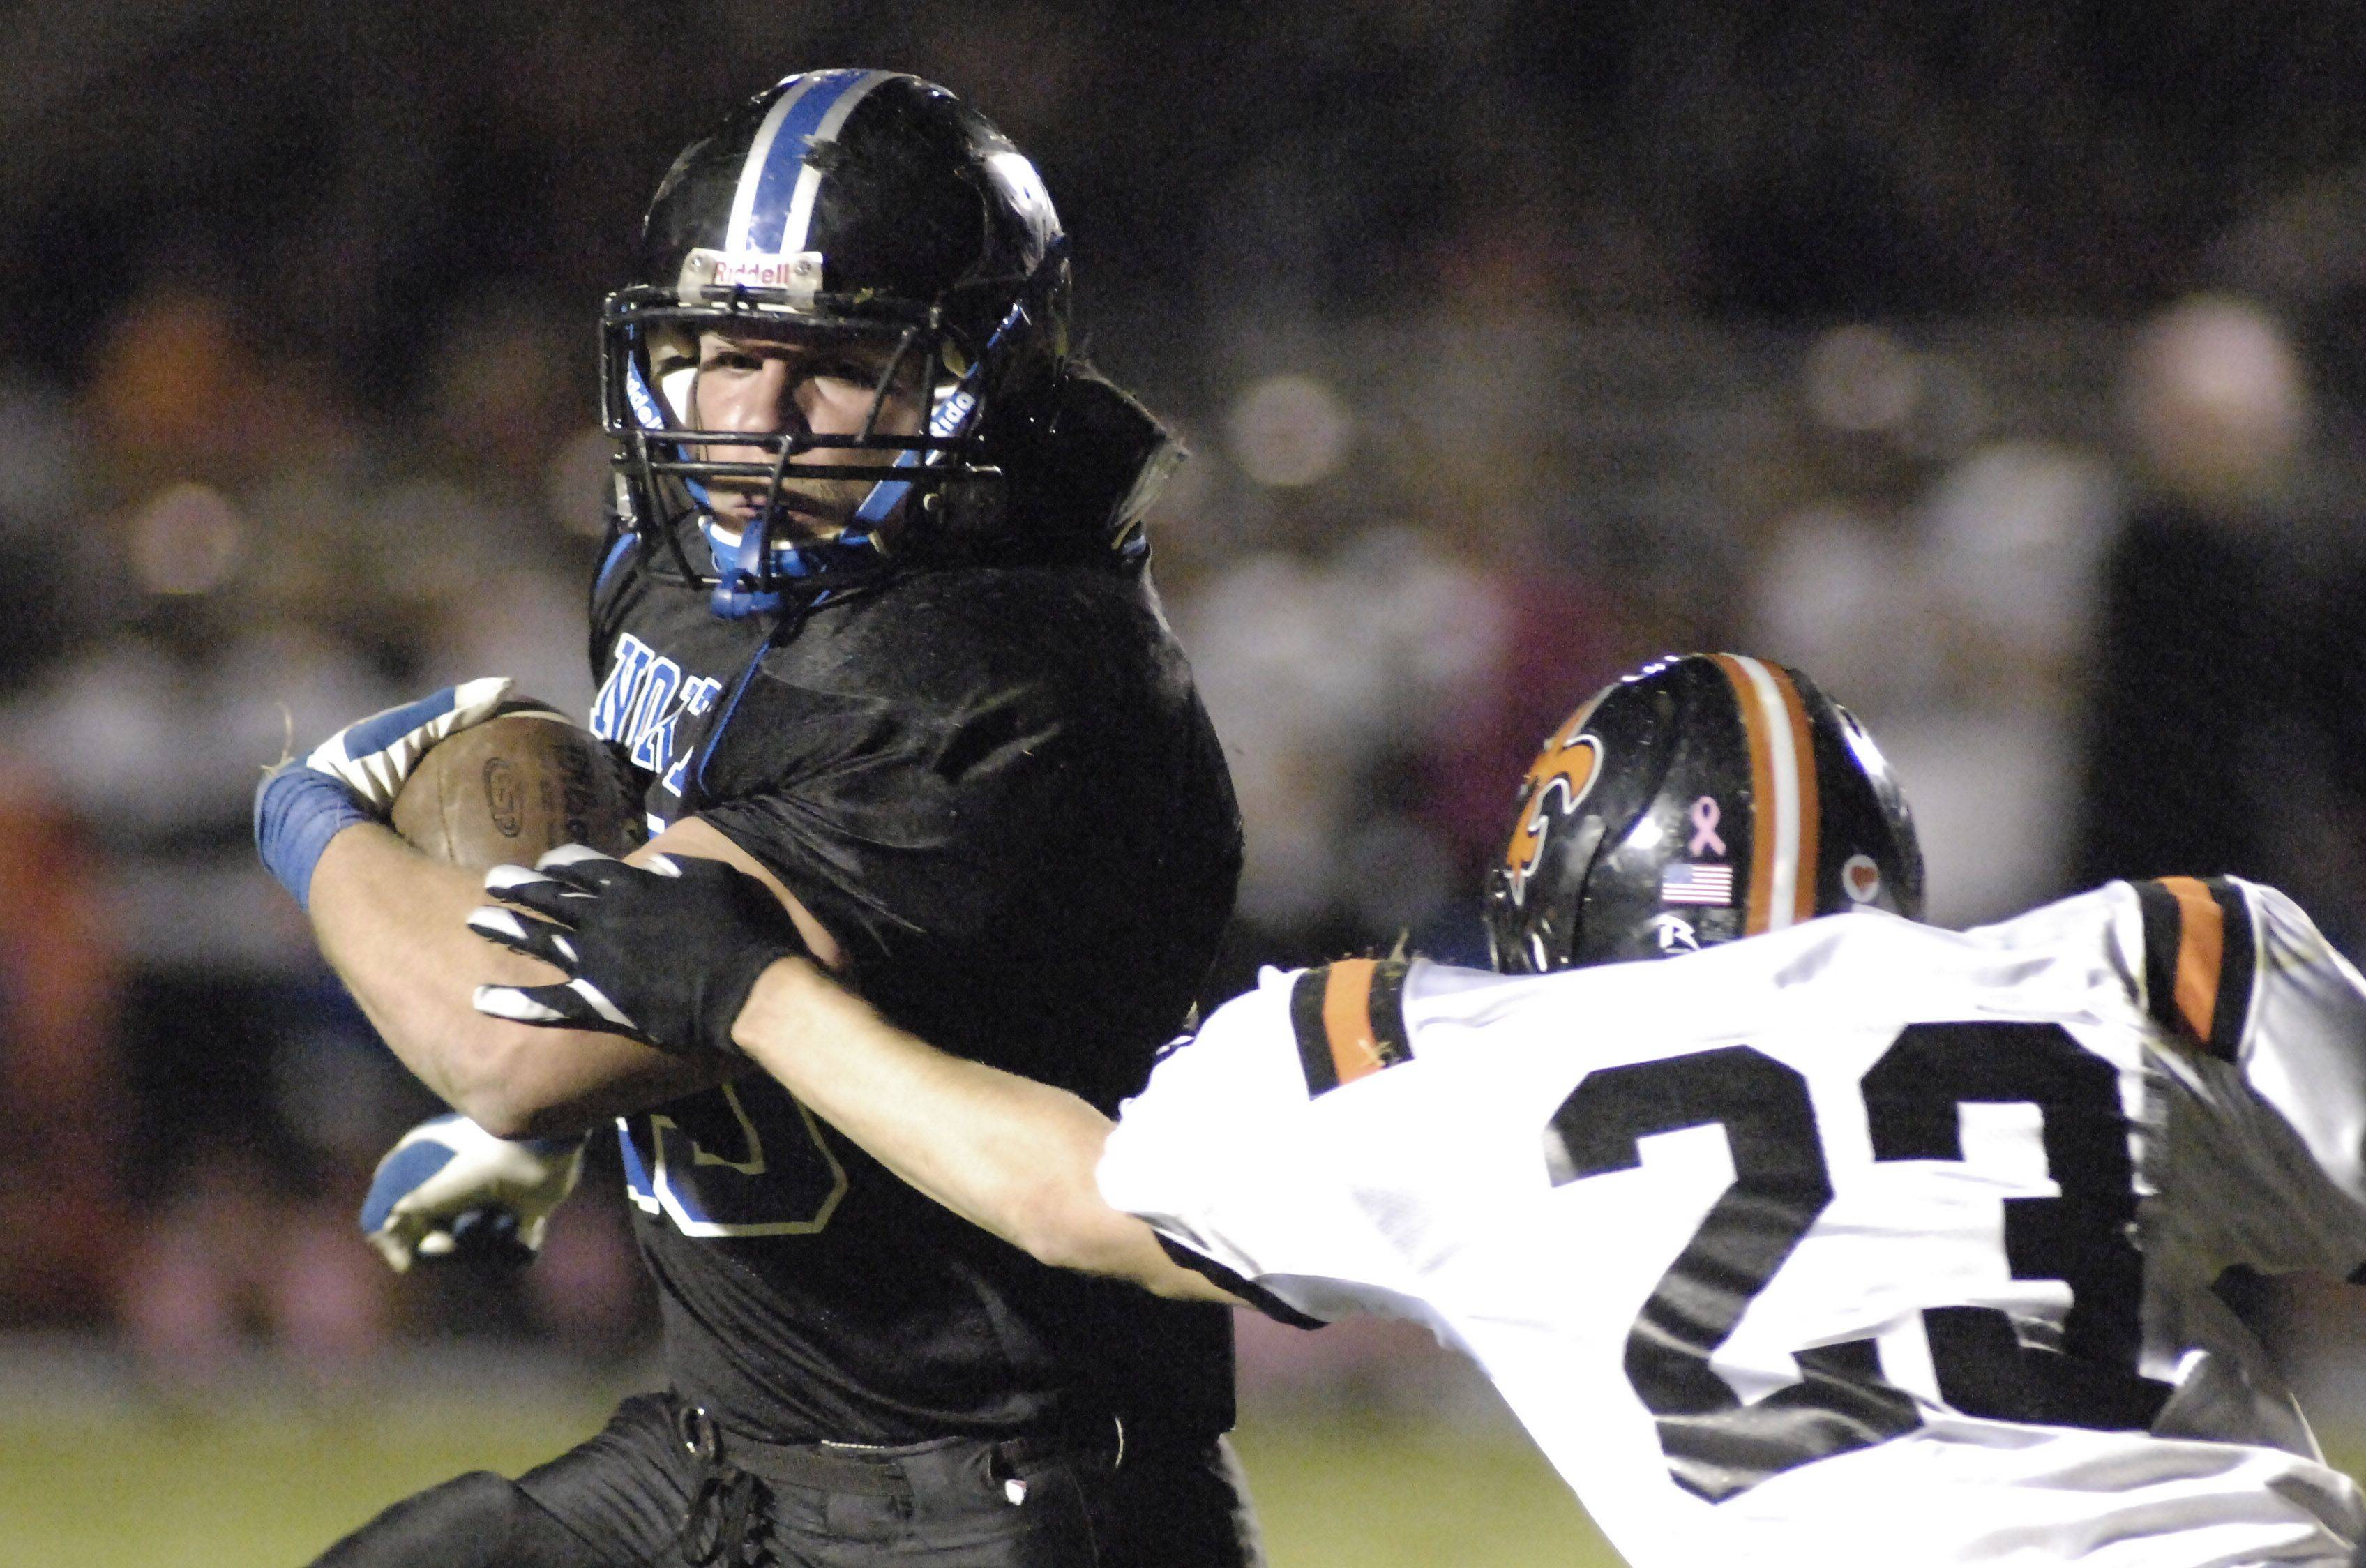 WEEK 9- St. Charles North's Dirk Schmitt shakes off St. Charles East's Carter Reading in the third quarter .